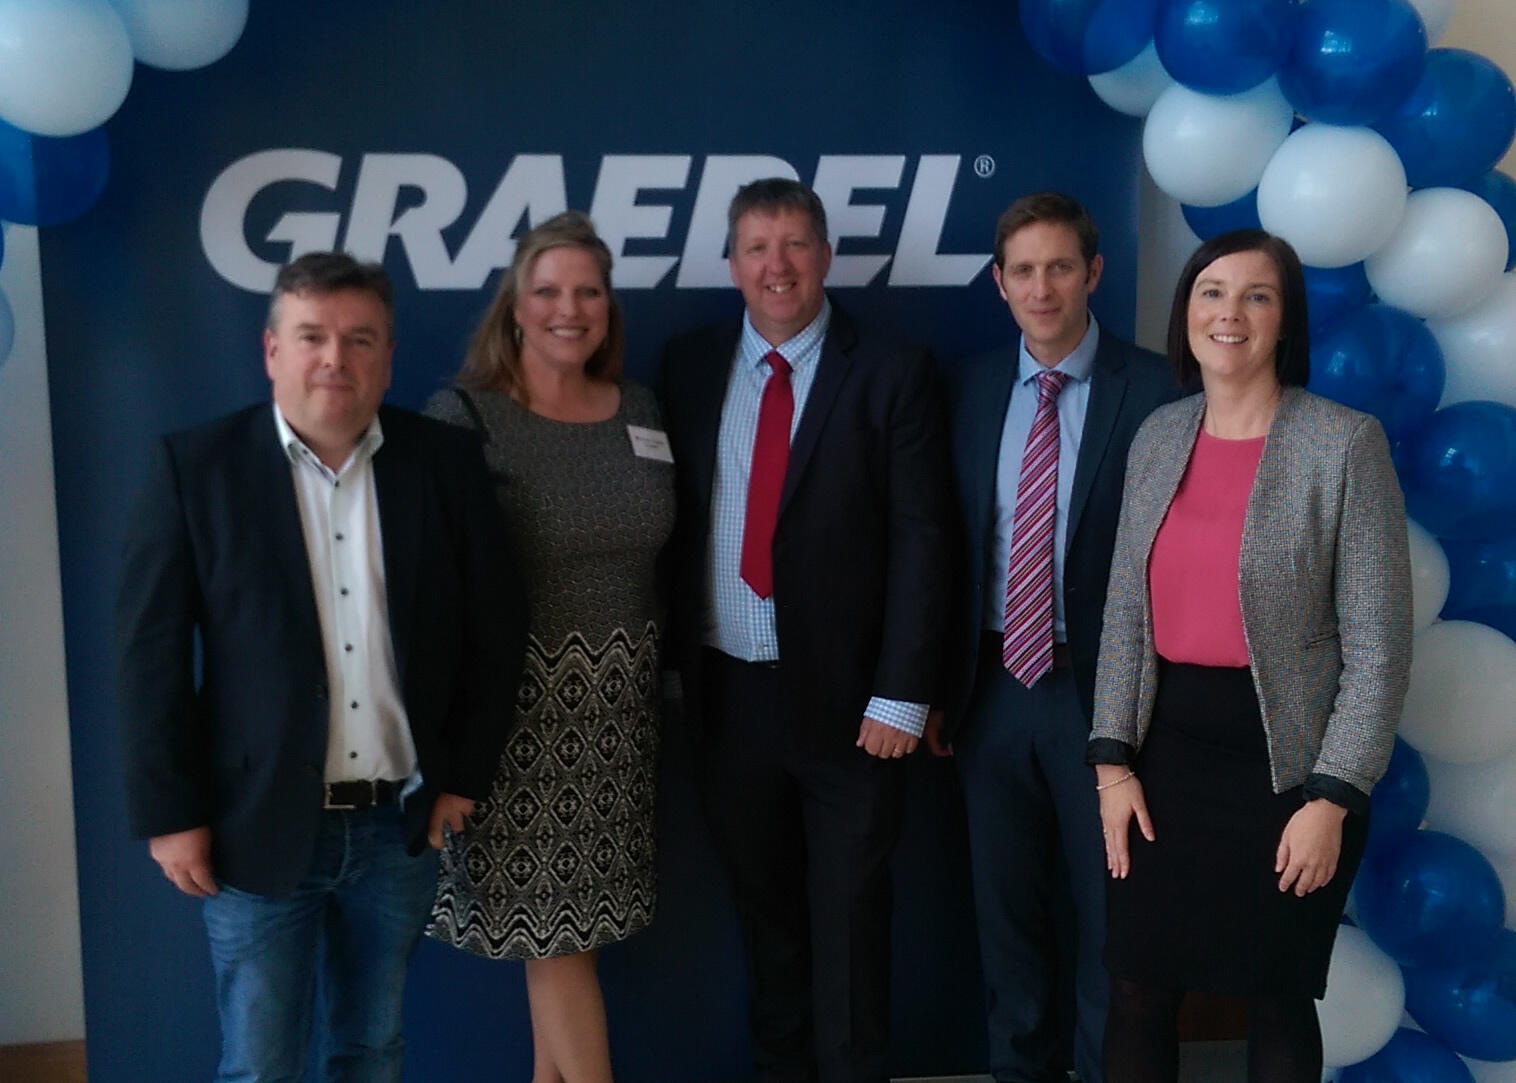 DkIT Delighted to Welcome Graebel Companies Inc. to North East